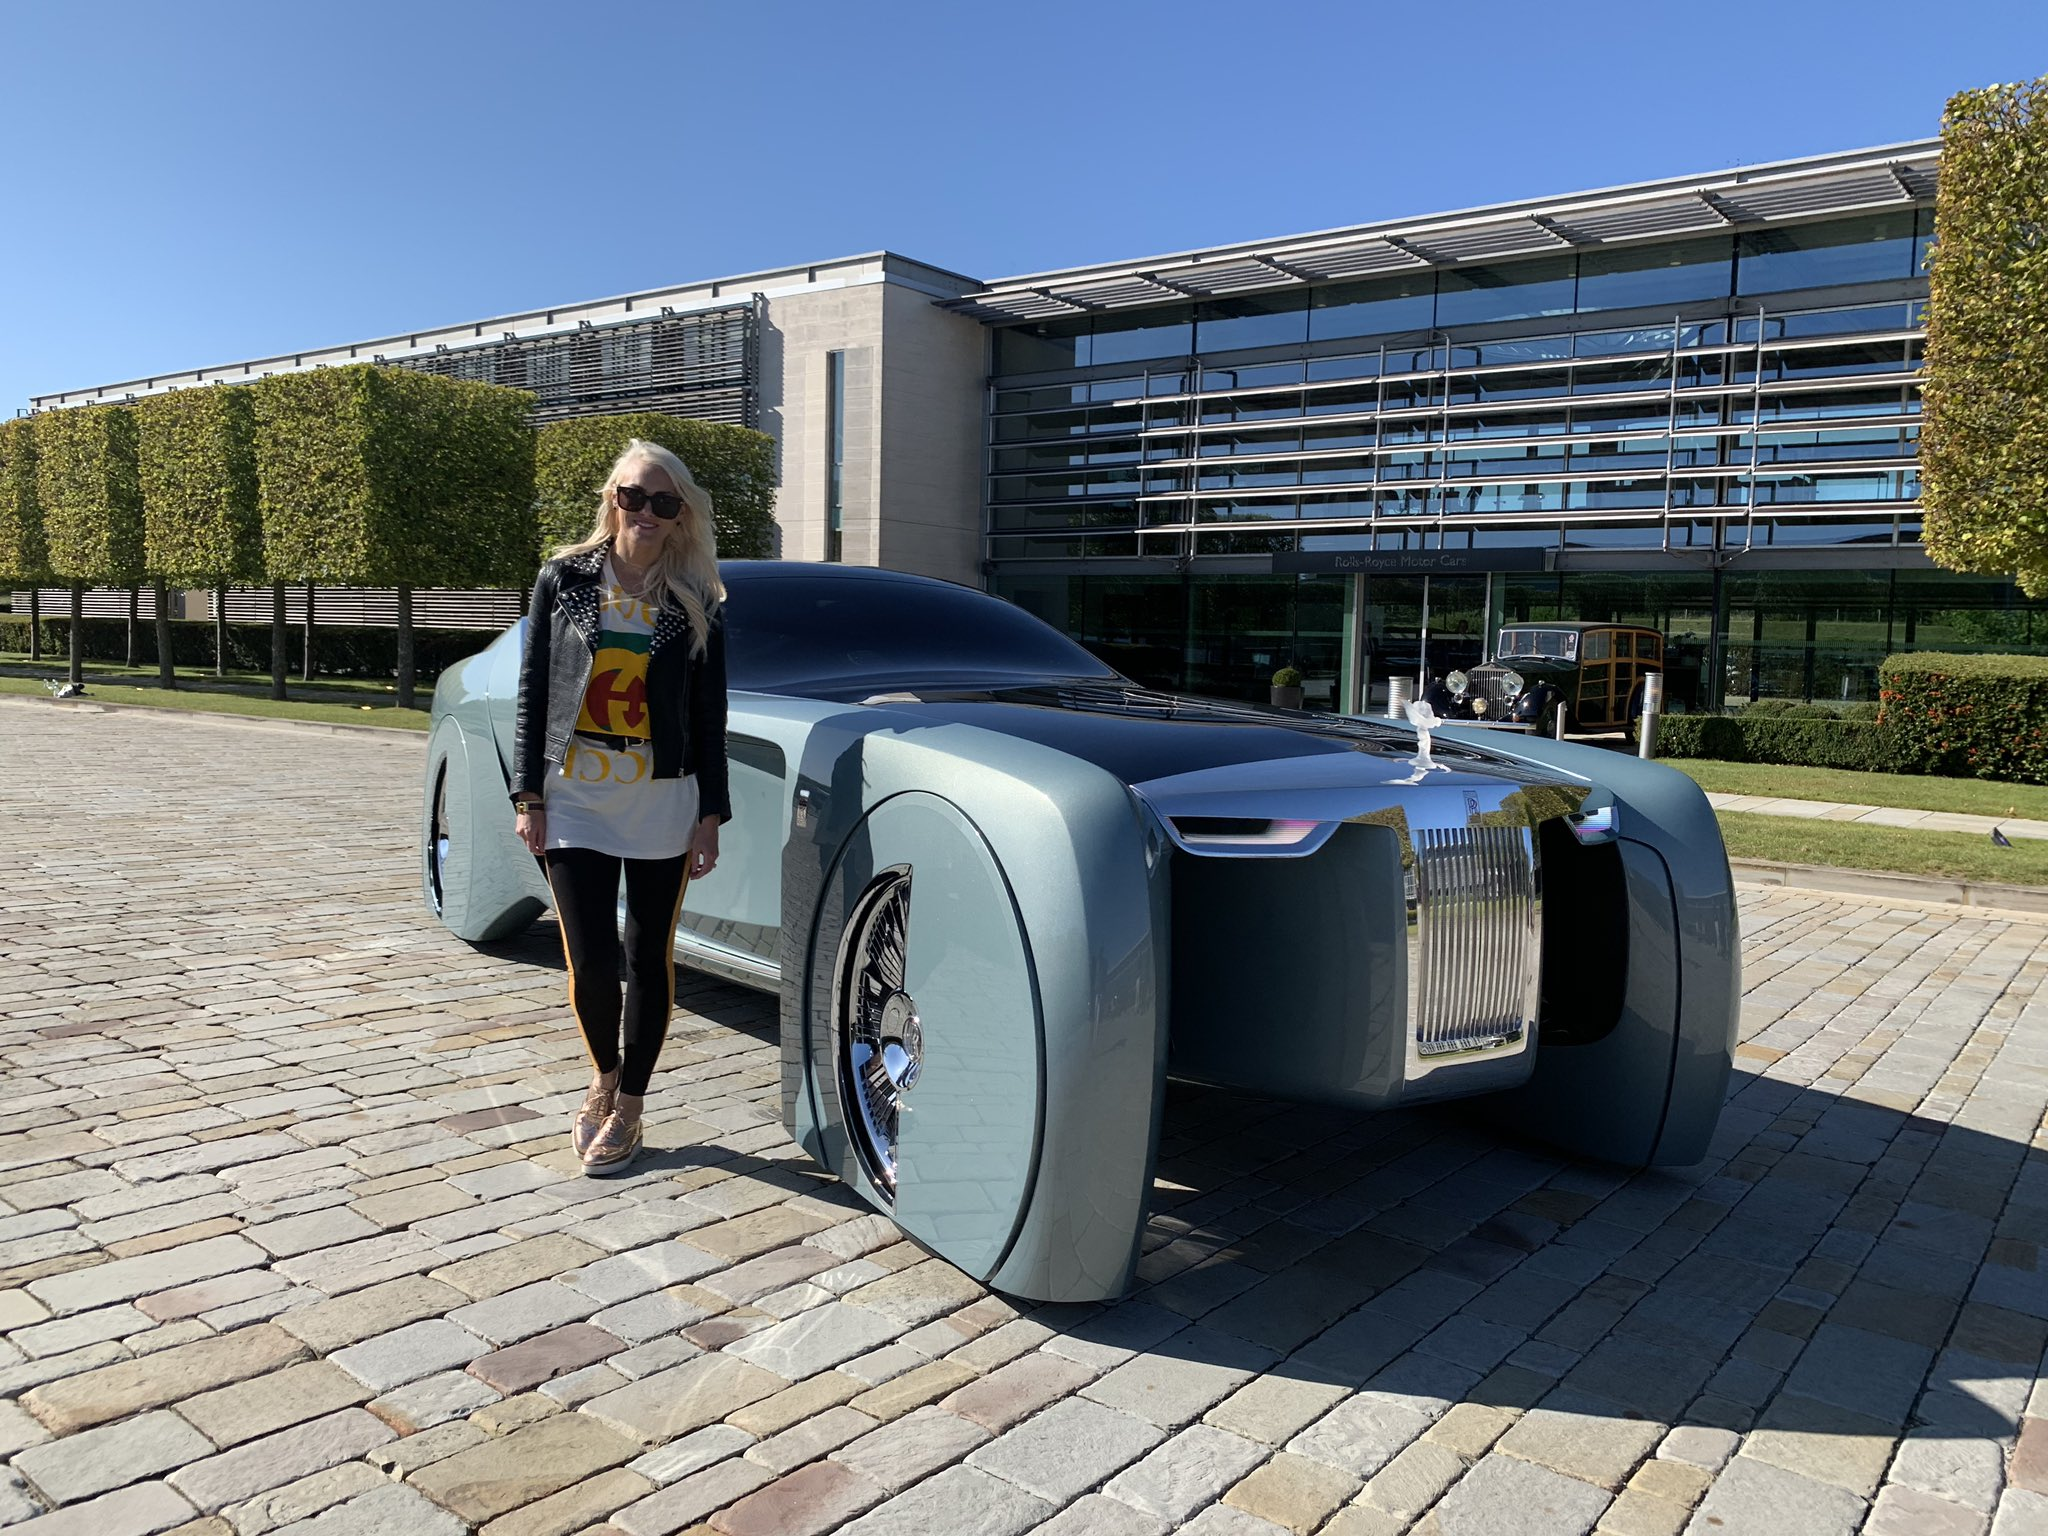 Supercar Blondie On Twitter Rolls Royce Of The Year 2035 New Video Out Https T Co 2gjnvm7oxl